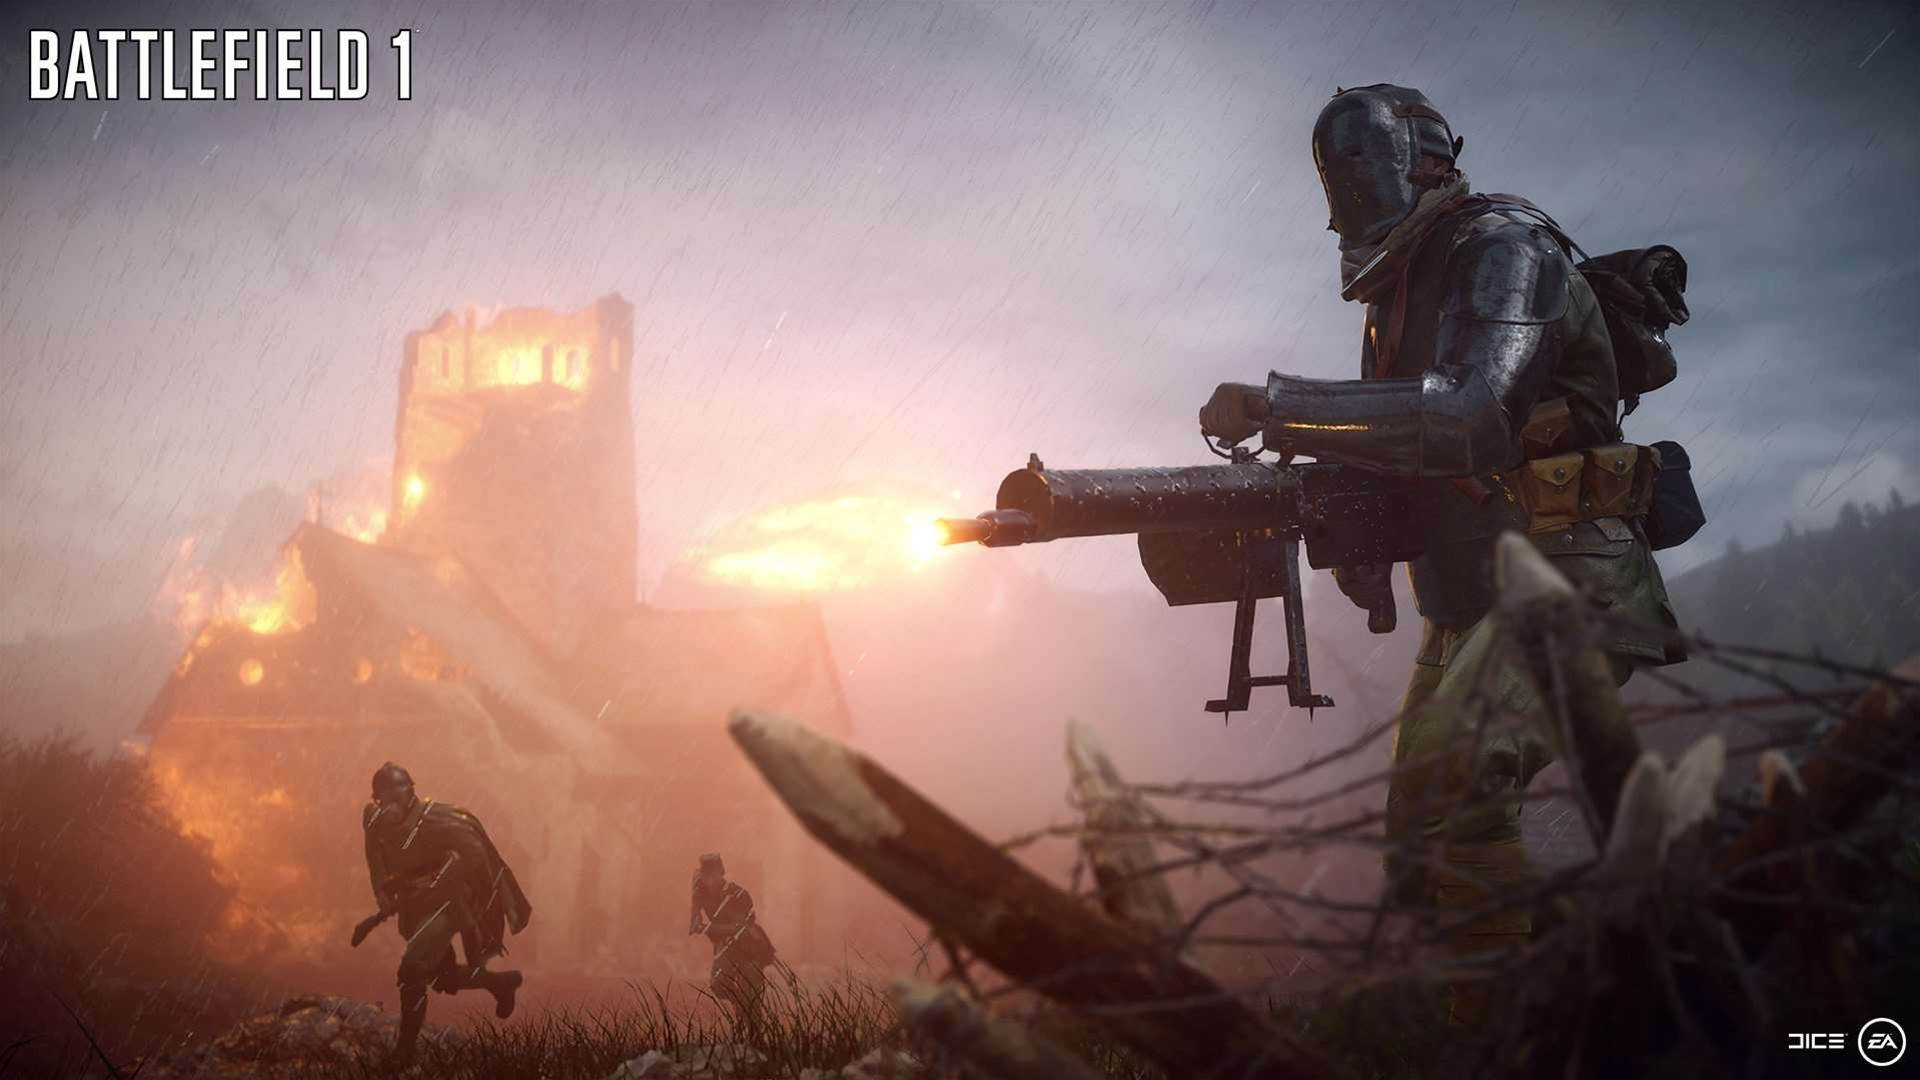 Beautiful Battlefield 1 screenshots